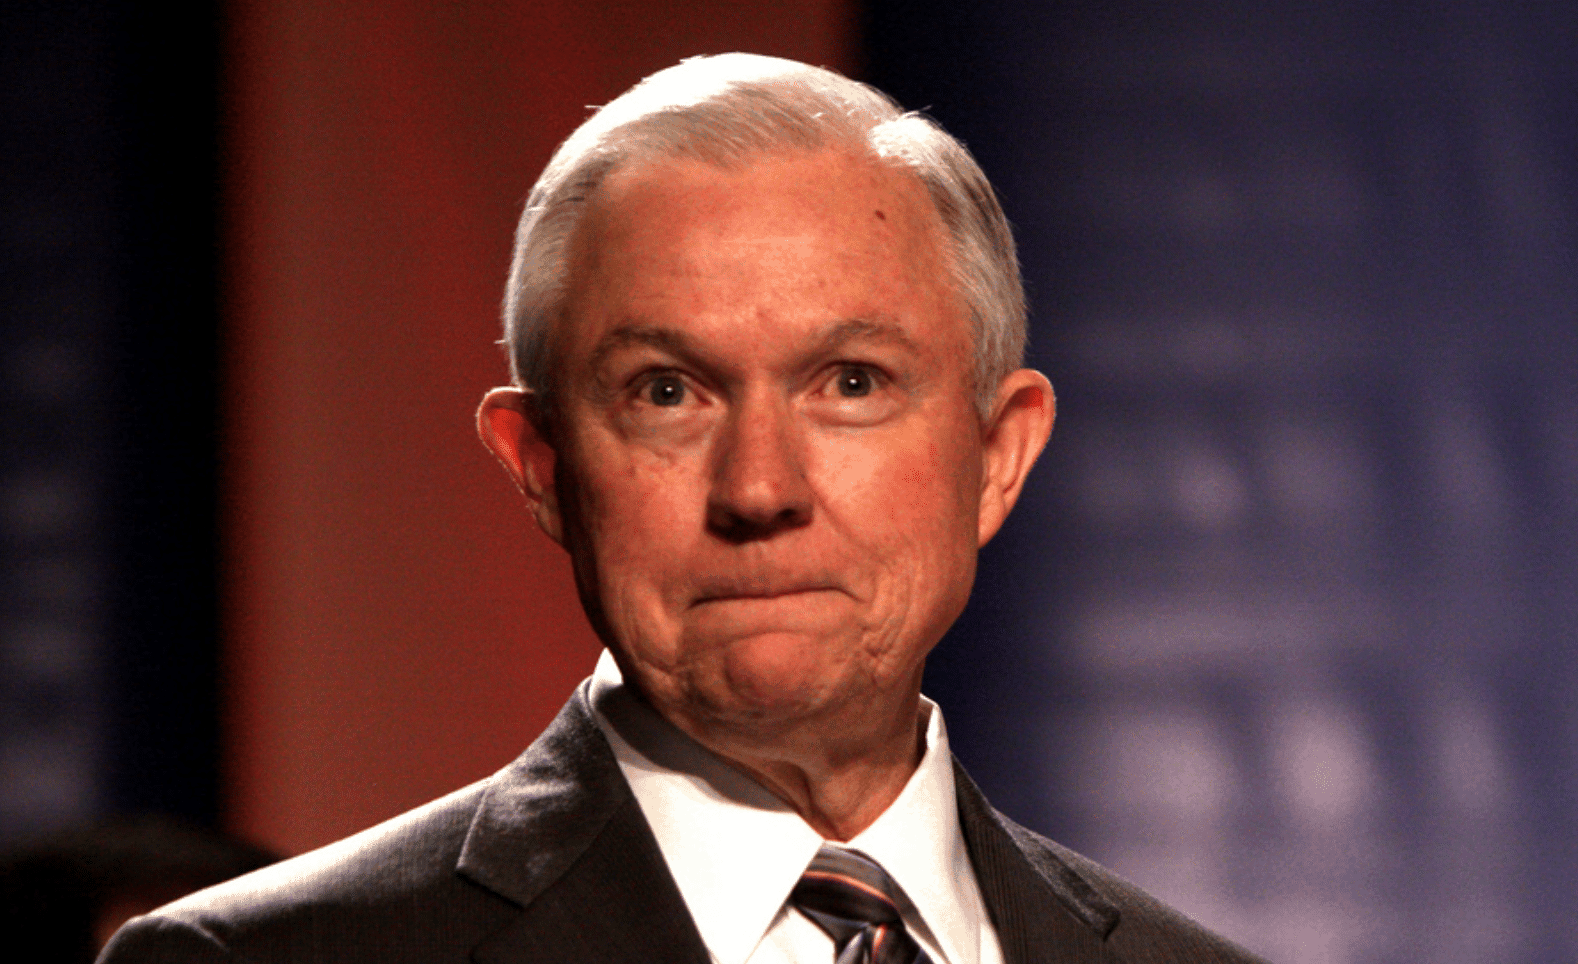 Judge Threatens to Hold Jeff Sessions in Contempt, Tells DOJ to 'Turn the plane around' After Mother is Deported